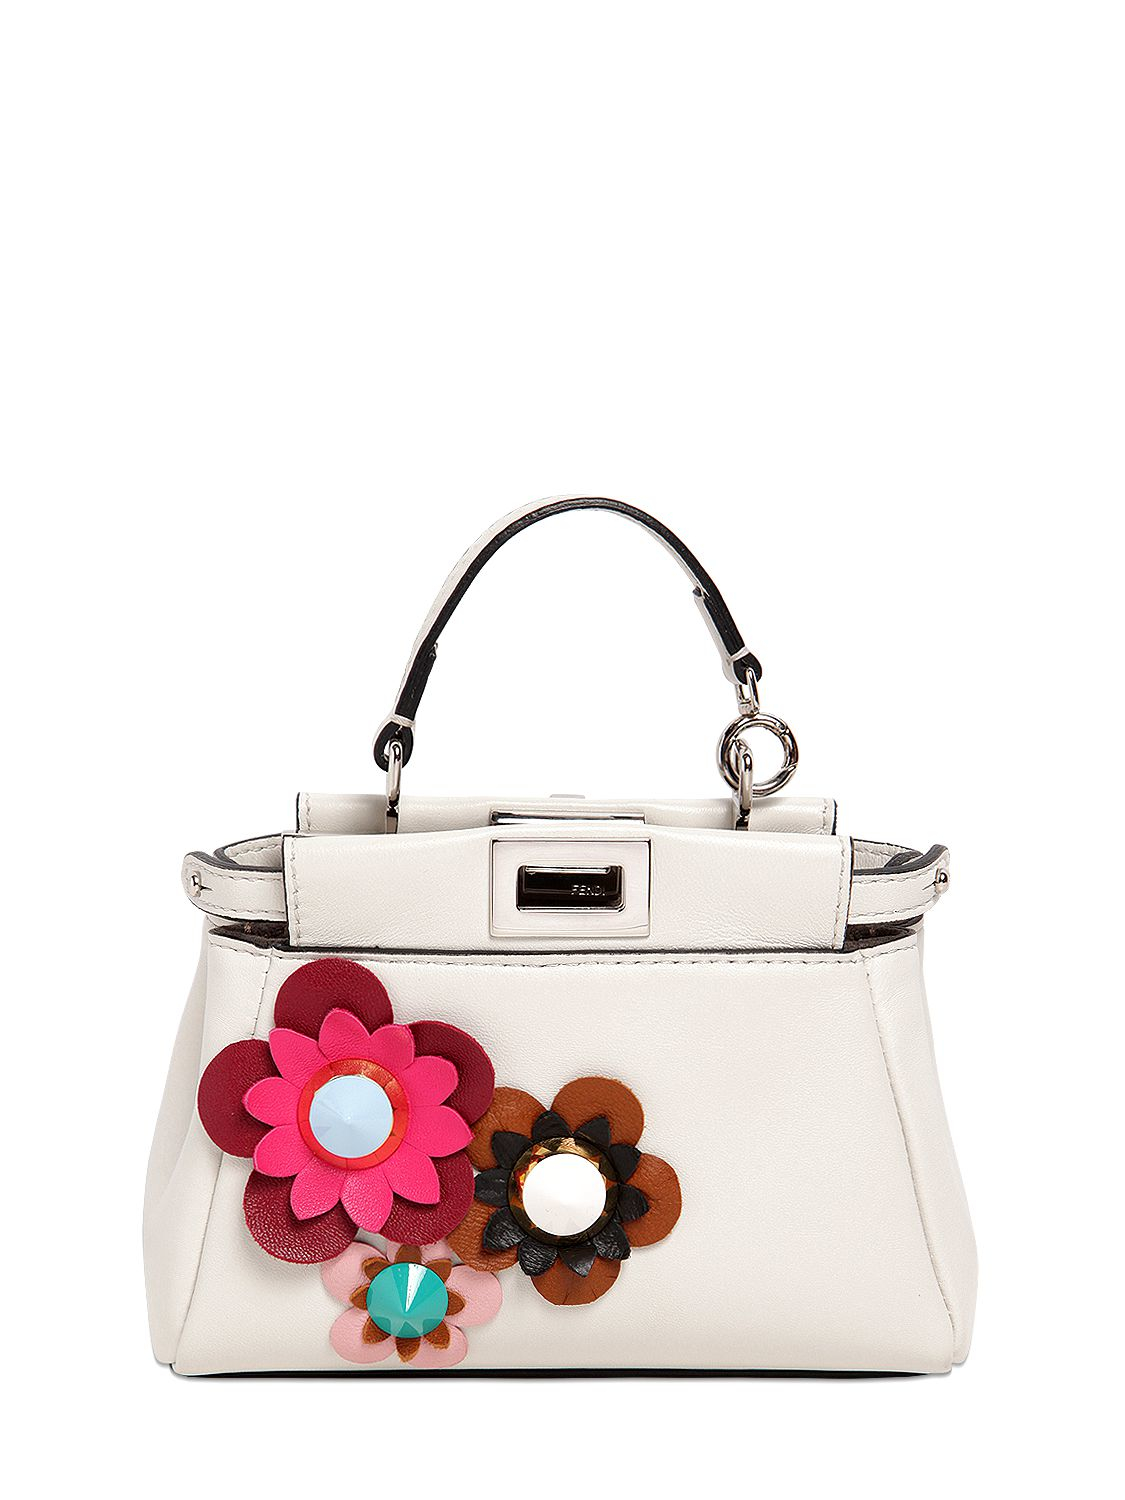 get fendi mini peekaboo sequin embellished bag 0c63a 36e81  low cost lyst  fendi micro peekaboo crossbody bag debb2 490a5 725234891aaff